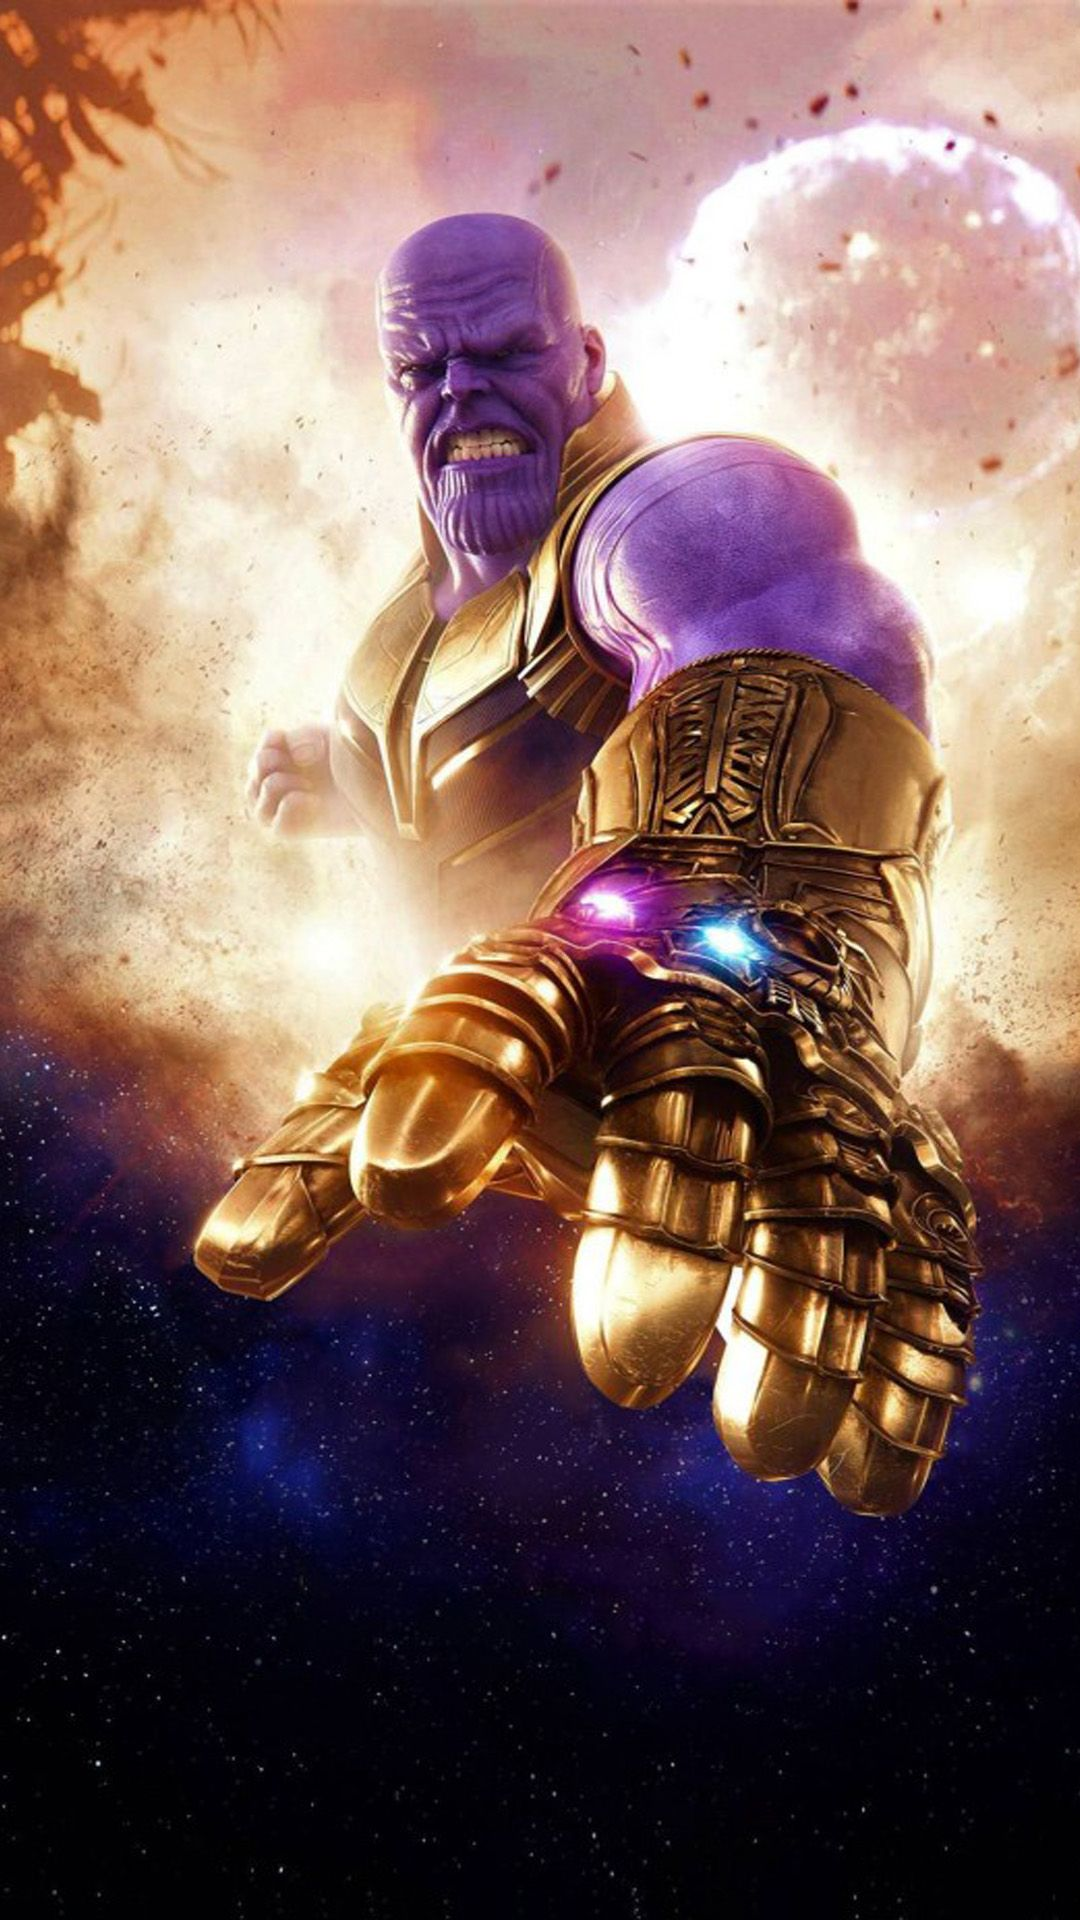 View and Download Thanos Avengers Infinity War 2018 HD Mobile Wallpaper for  free on your mobile phones 210aa47cc